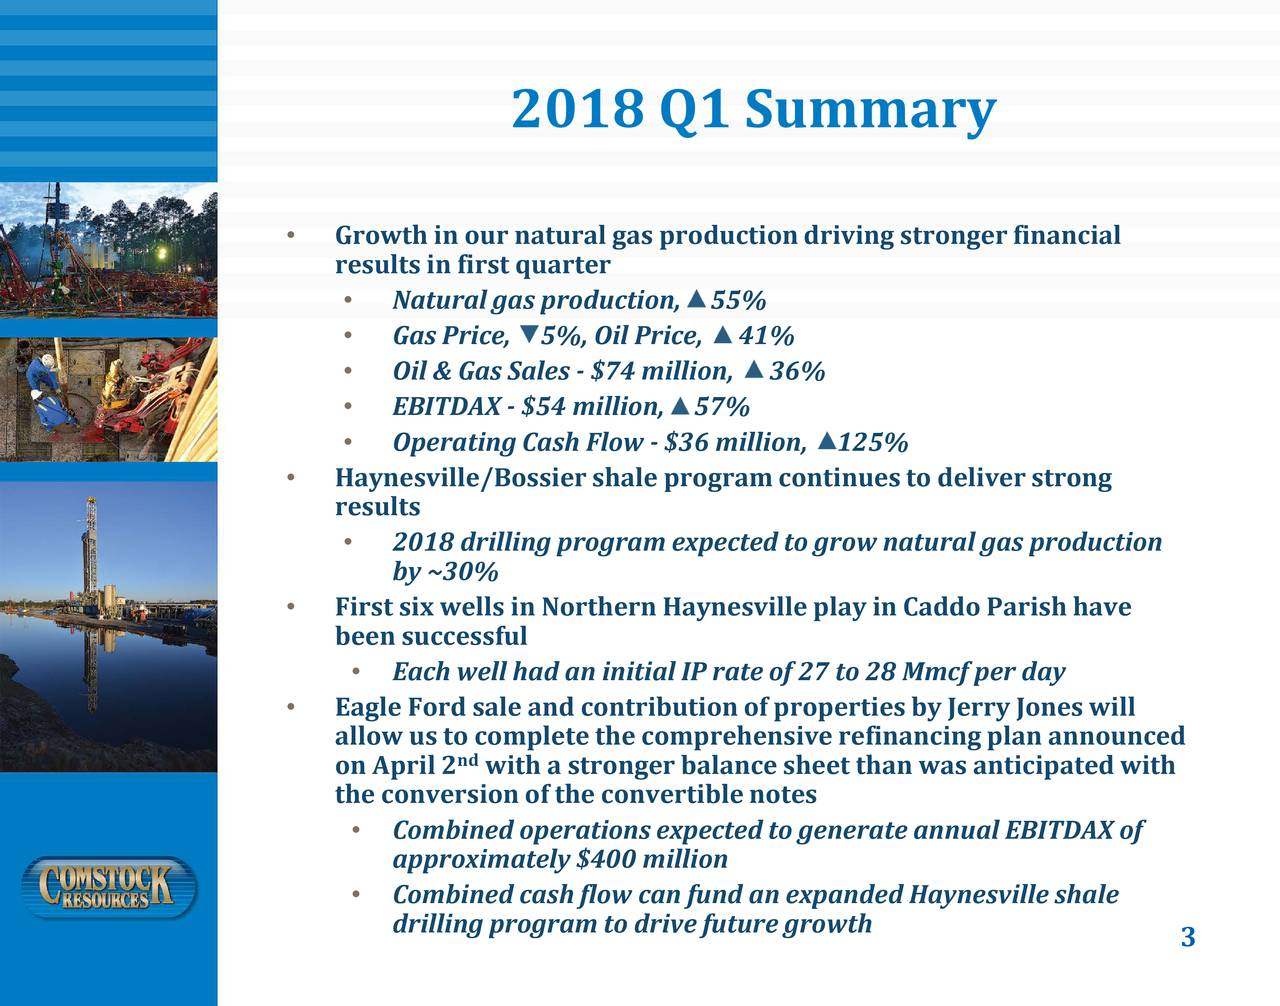 • Growth in our natural gas production driving stronger financial results in first quarter • Naturalgas production, 55% • Gas Price, 5%, Oil Price, 41% • Oil & Gas Sales -$74 million, 36% • EBITDAX- $54 million, 57% • Operating Cash Flow -$36 million, 125% • Haynesville/Bossier shale program continues to deliver strong results • 2018 drilling program expected to grow natural gas production by ~30% • First six wells in Northern Haynesville play in Caddo Parish have been successful • Each well had an initial IP rate of27 to 28 Mmcf per day • Eagle Ford sale and contribution of properties by Jerry Jones will allow us tndcomplete the comprehensive refinancing plan announced on April 2 with a stronger balance sheet than was anticipated with the conversion of the convertible notes • Combined operations expected to generate annual EBITDAX of approximately $400 million • Combined cash flow can fund an expanded Haynesville shale drilling program to drive future growth 3